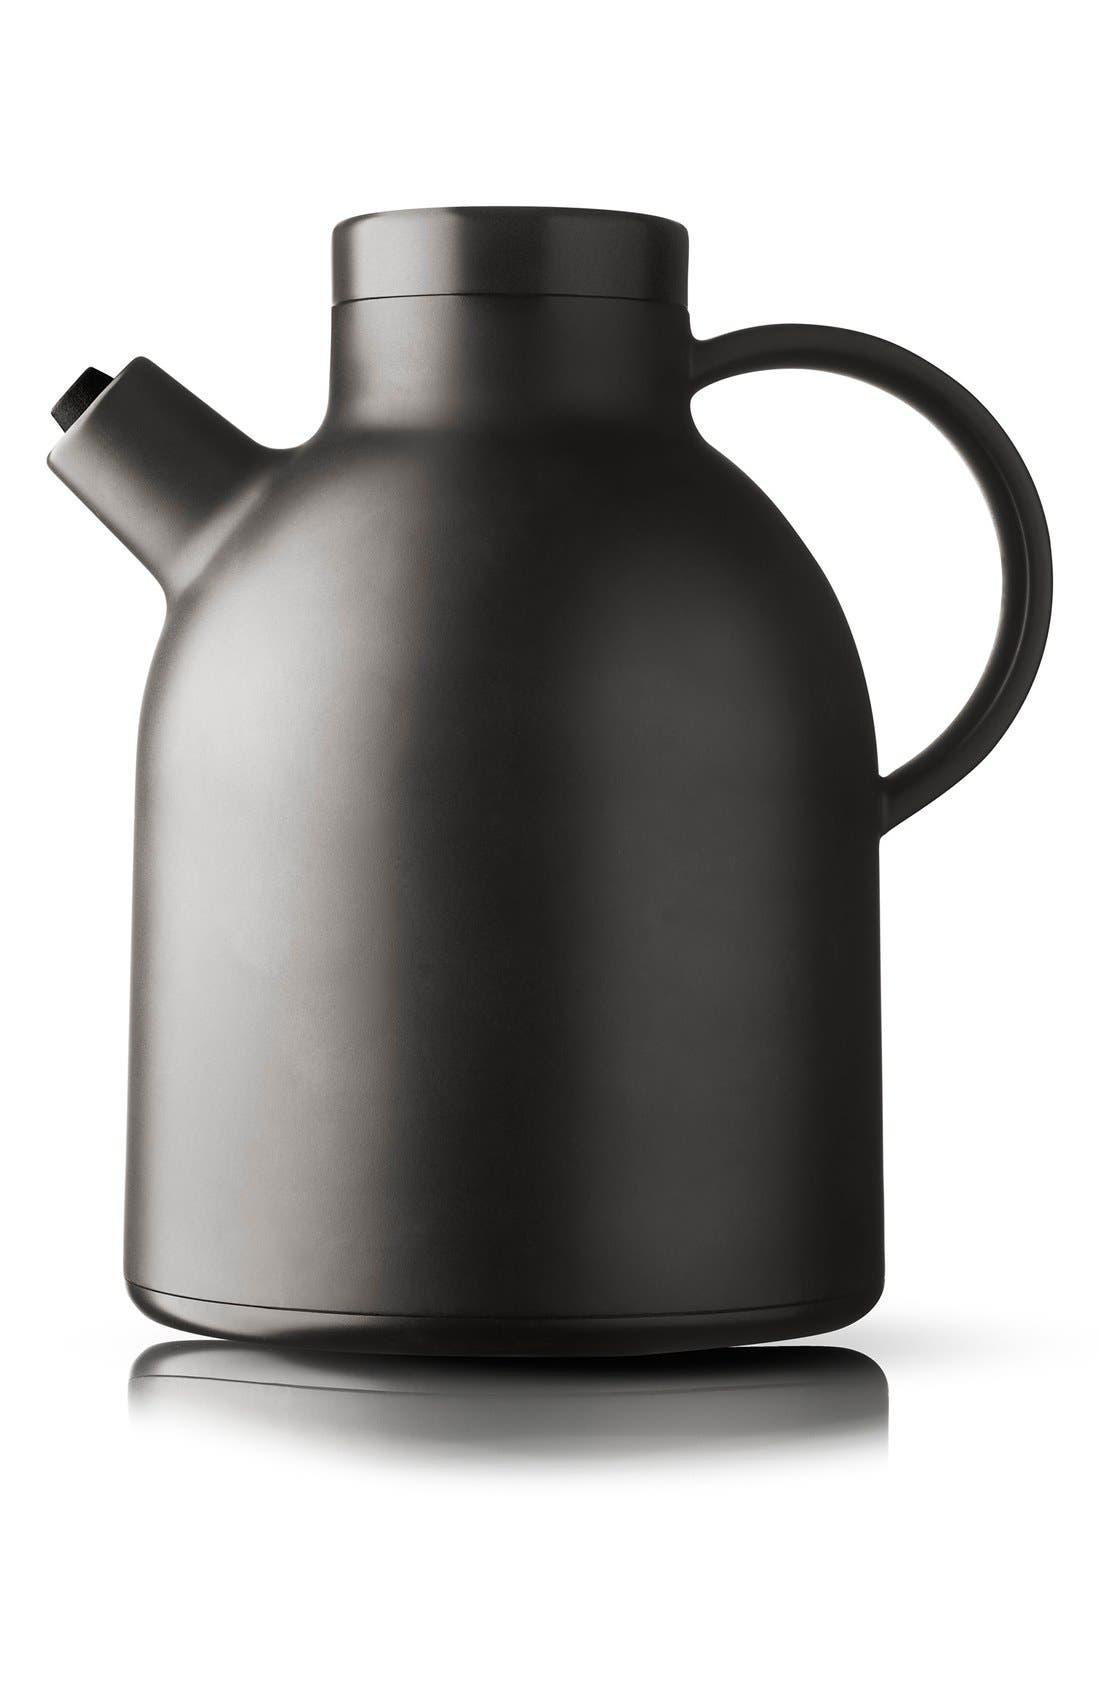 Alternate Image 1 Selected - MENU Kettle Thermo Jug